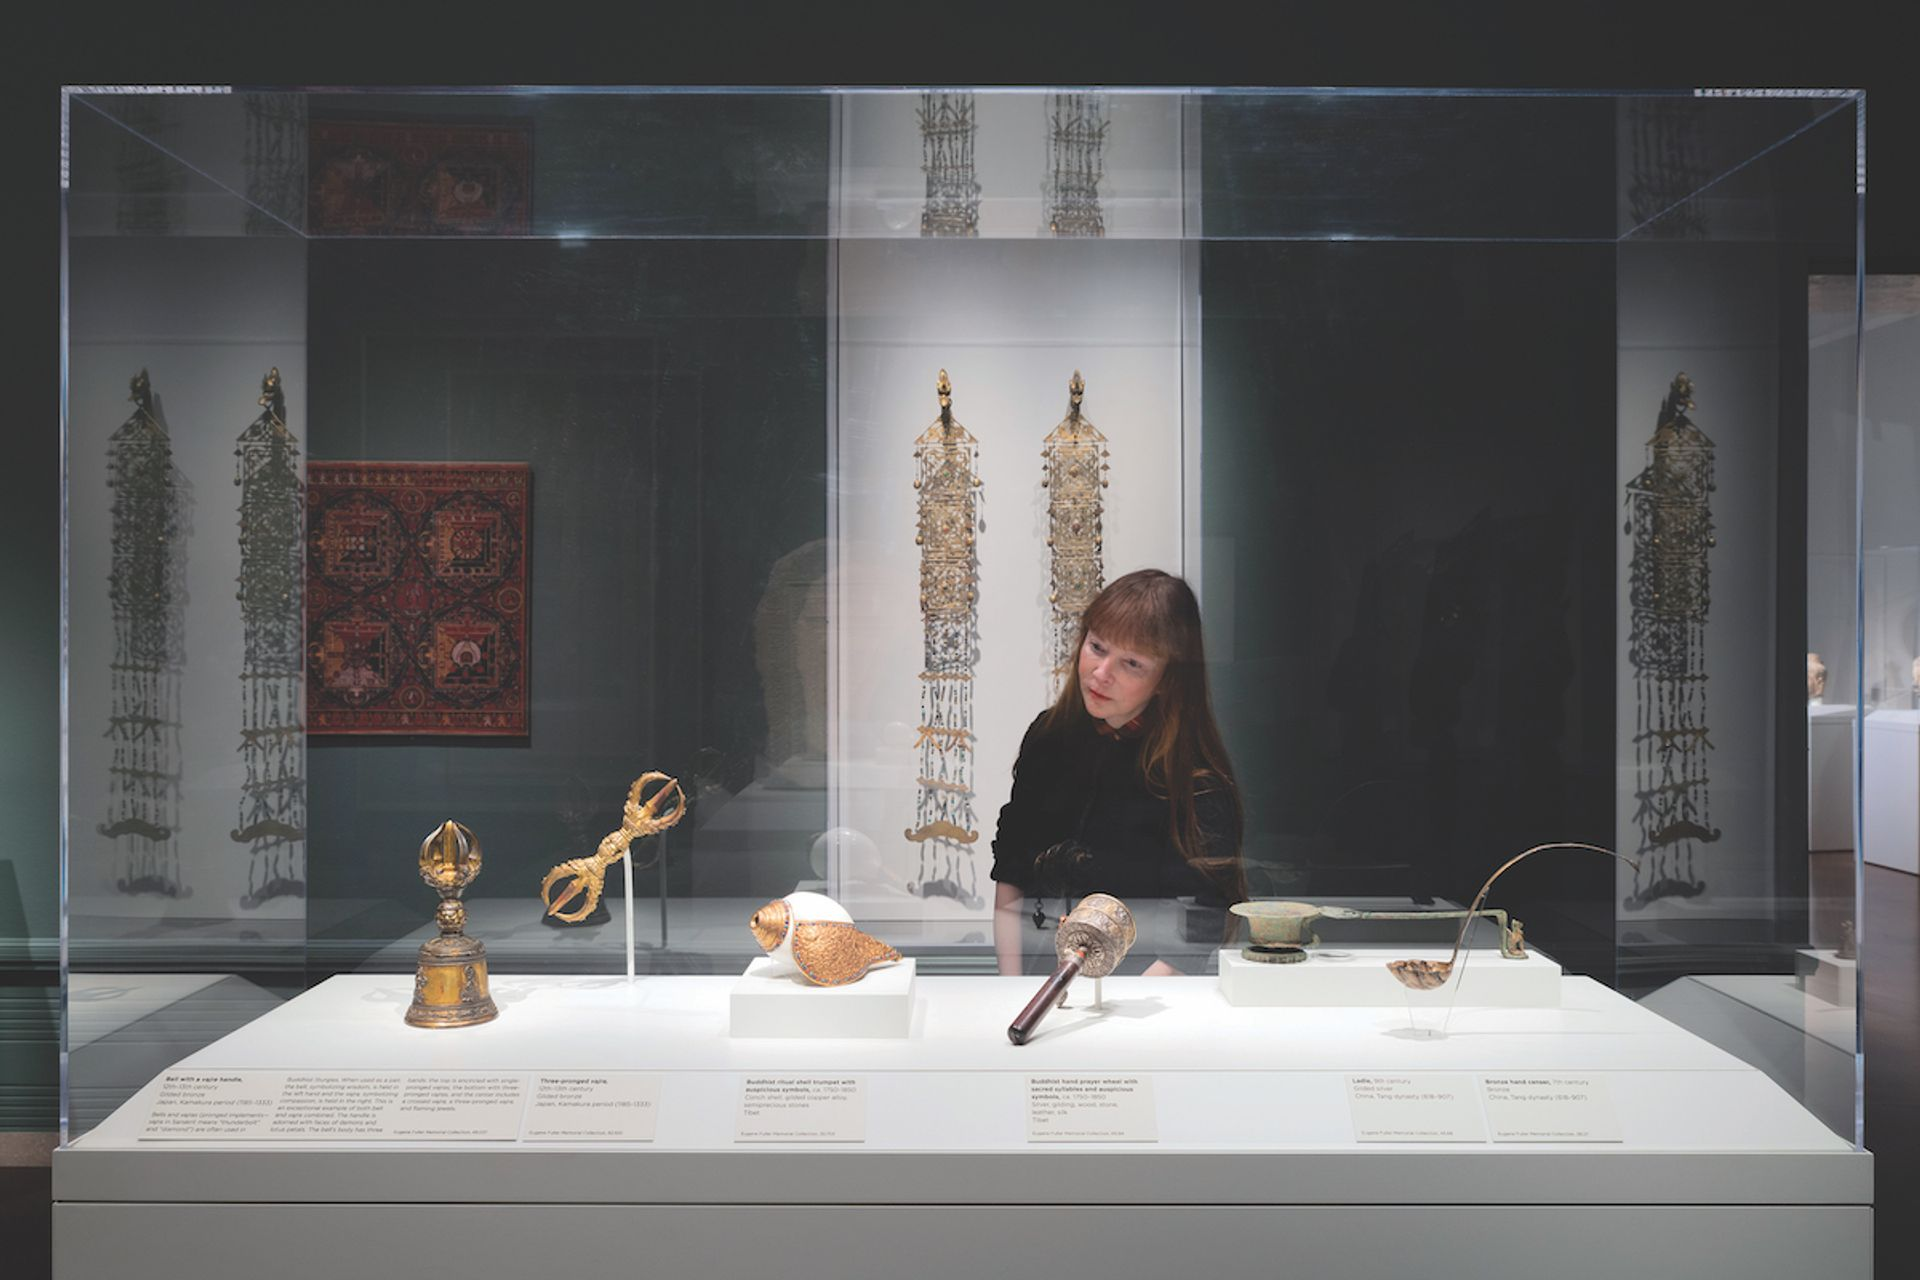 Boundless: Stories of Asian Art brings together works from China, Japan  and South Asia, and incorporates  Islamic art for the first time © Ripple Fang and courtesy of the Seattle Asian Art Museum